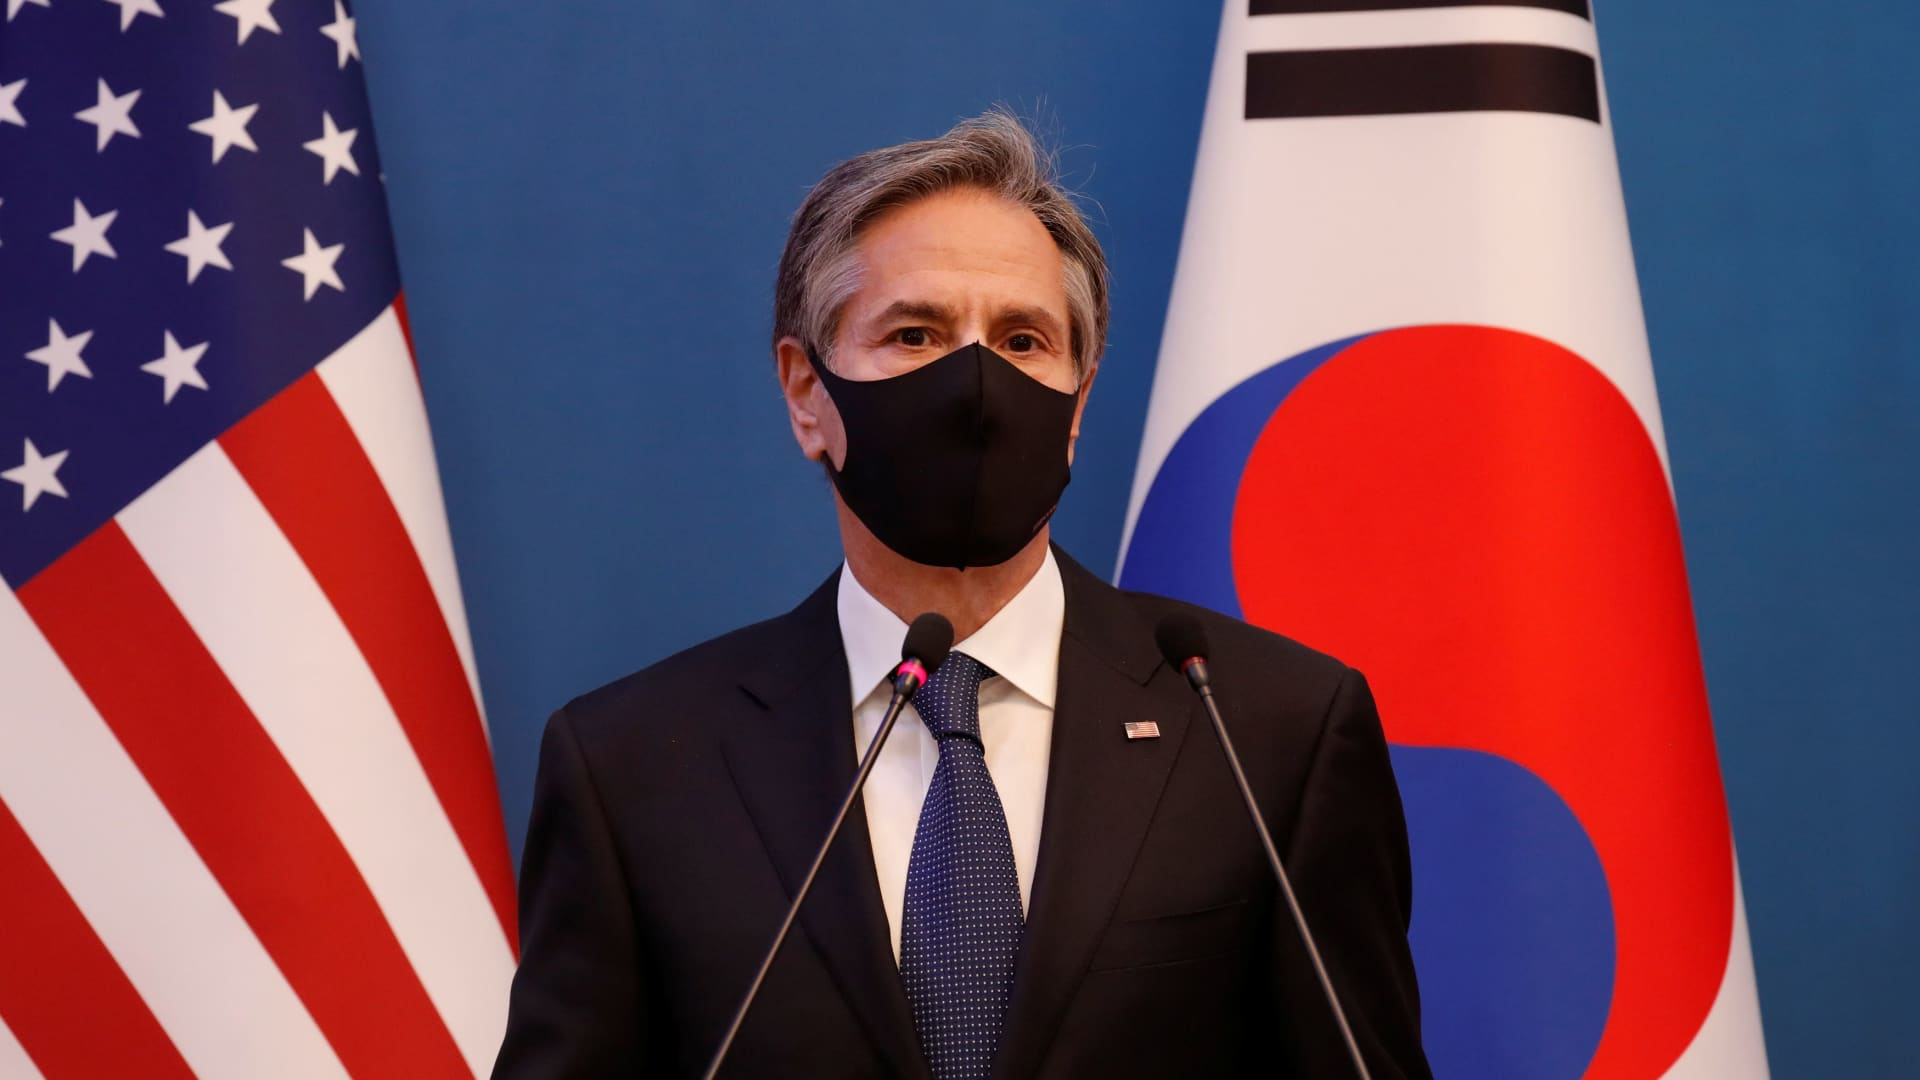 U.S. Secretary of State Antony Blinken speaks during a joint news conference after the Foreign and Defense Ministerial meeting between South Korea and the U.S. at the Foreign Ministry in Seoul, South Korea, March 18, 2021.